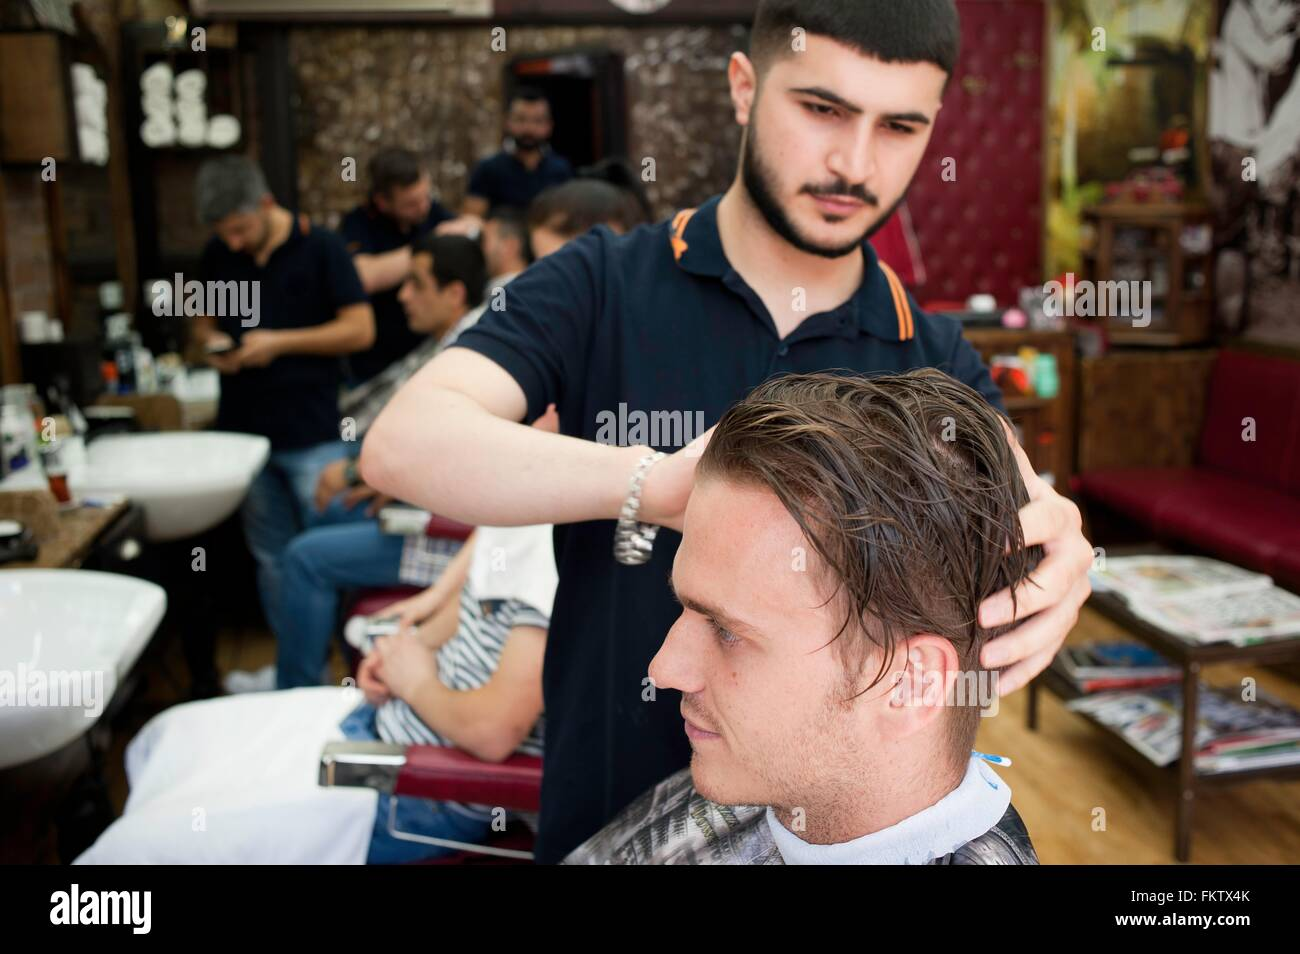 Hairdresser in barbershop cutting young mans hair - Stock Image